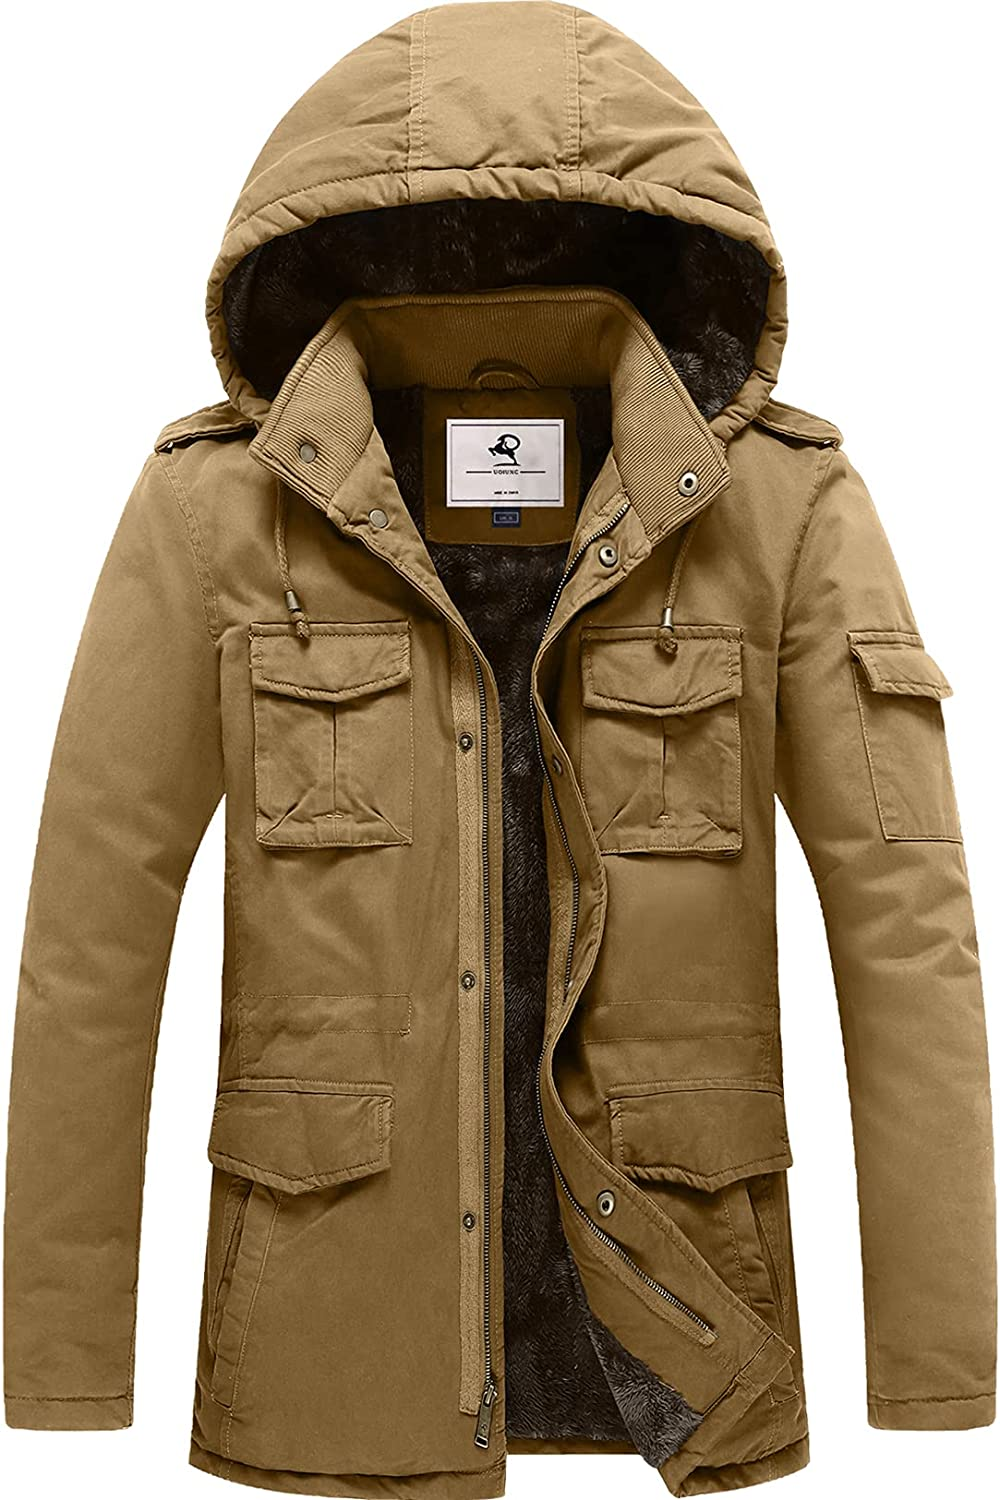 Daily bargain sale Uoiuxc Men's Indianapolis Mall Winter Military Jacket Hooded Fur Faux Lined Warm C